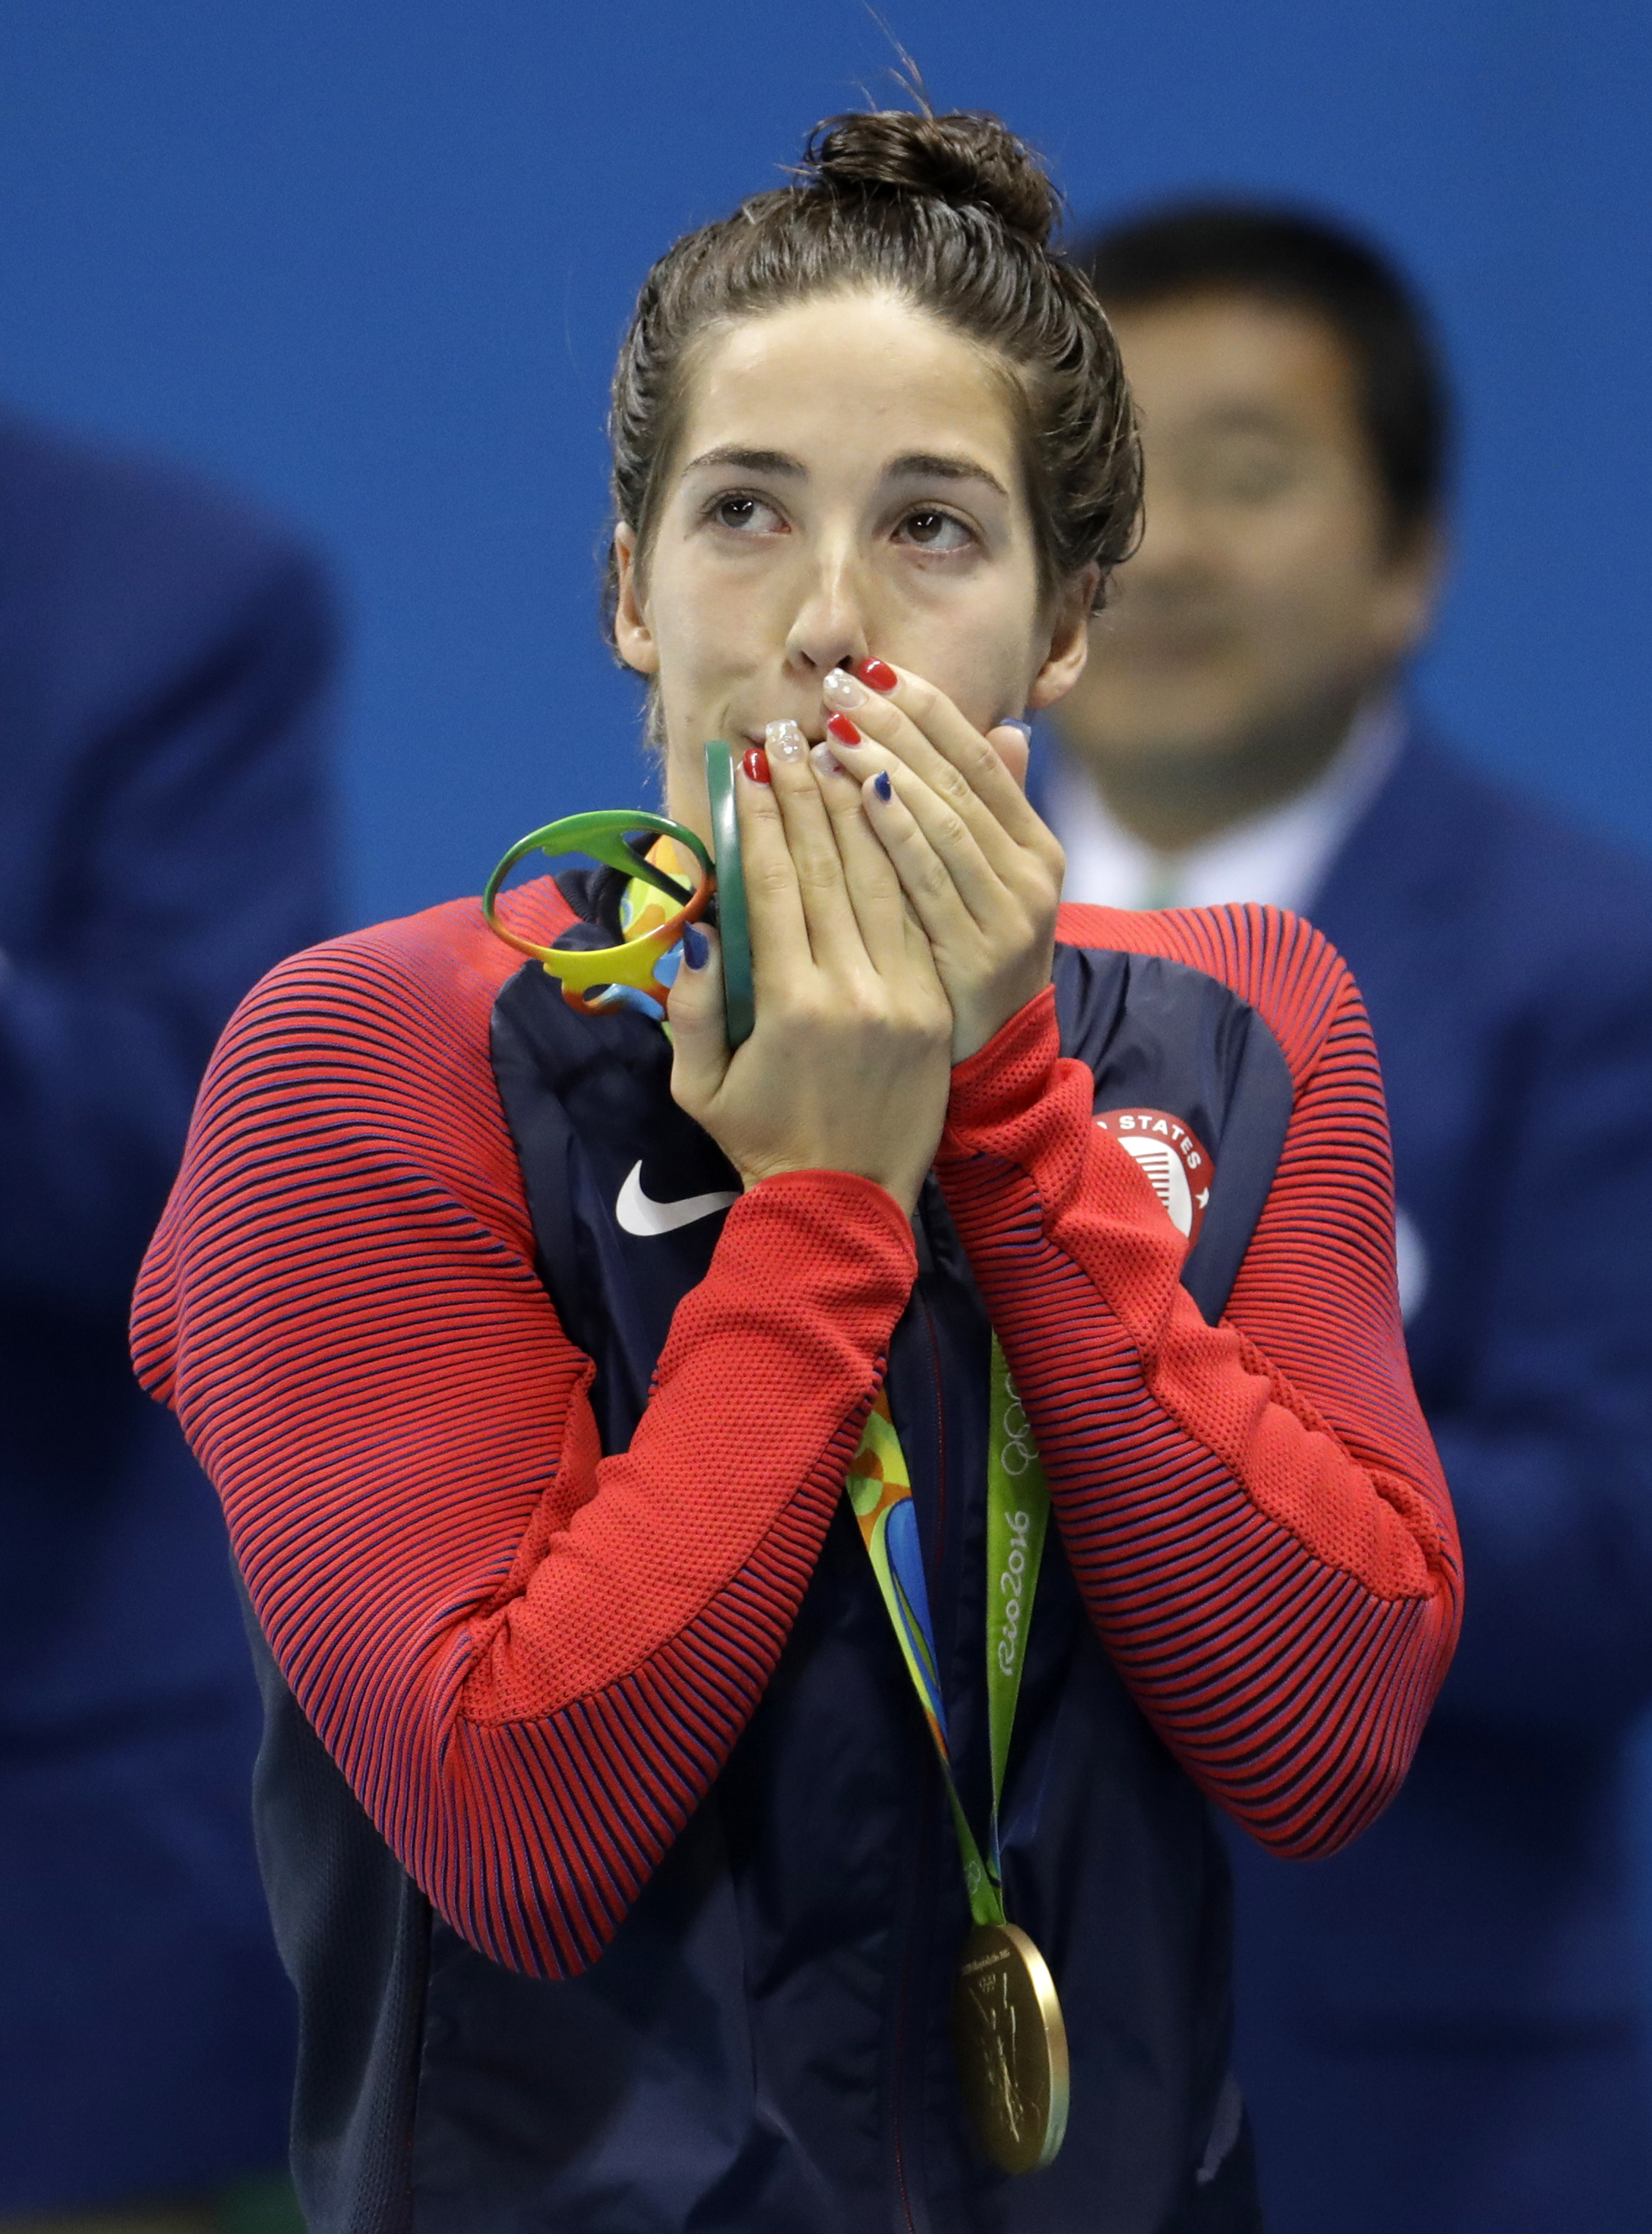 United States' Maya Dirado celebrates after winning gold in the women's 200-meter backstroke final during the swimming competitions at the 2016 Summer Olympics, Friday, Aug. 12, 2016, in Rio de Janeiro, Brazil. (AP Photo/Julio Cortez)